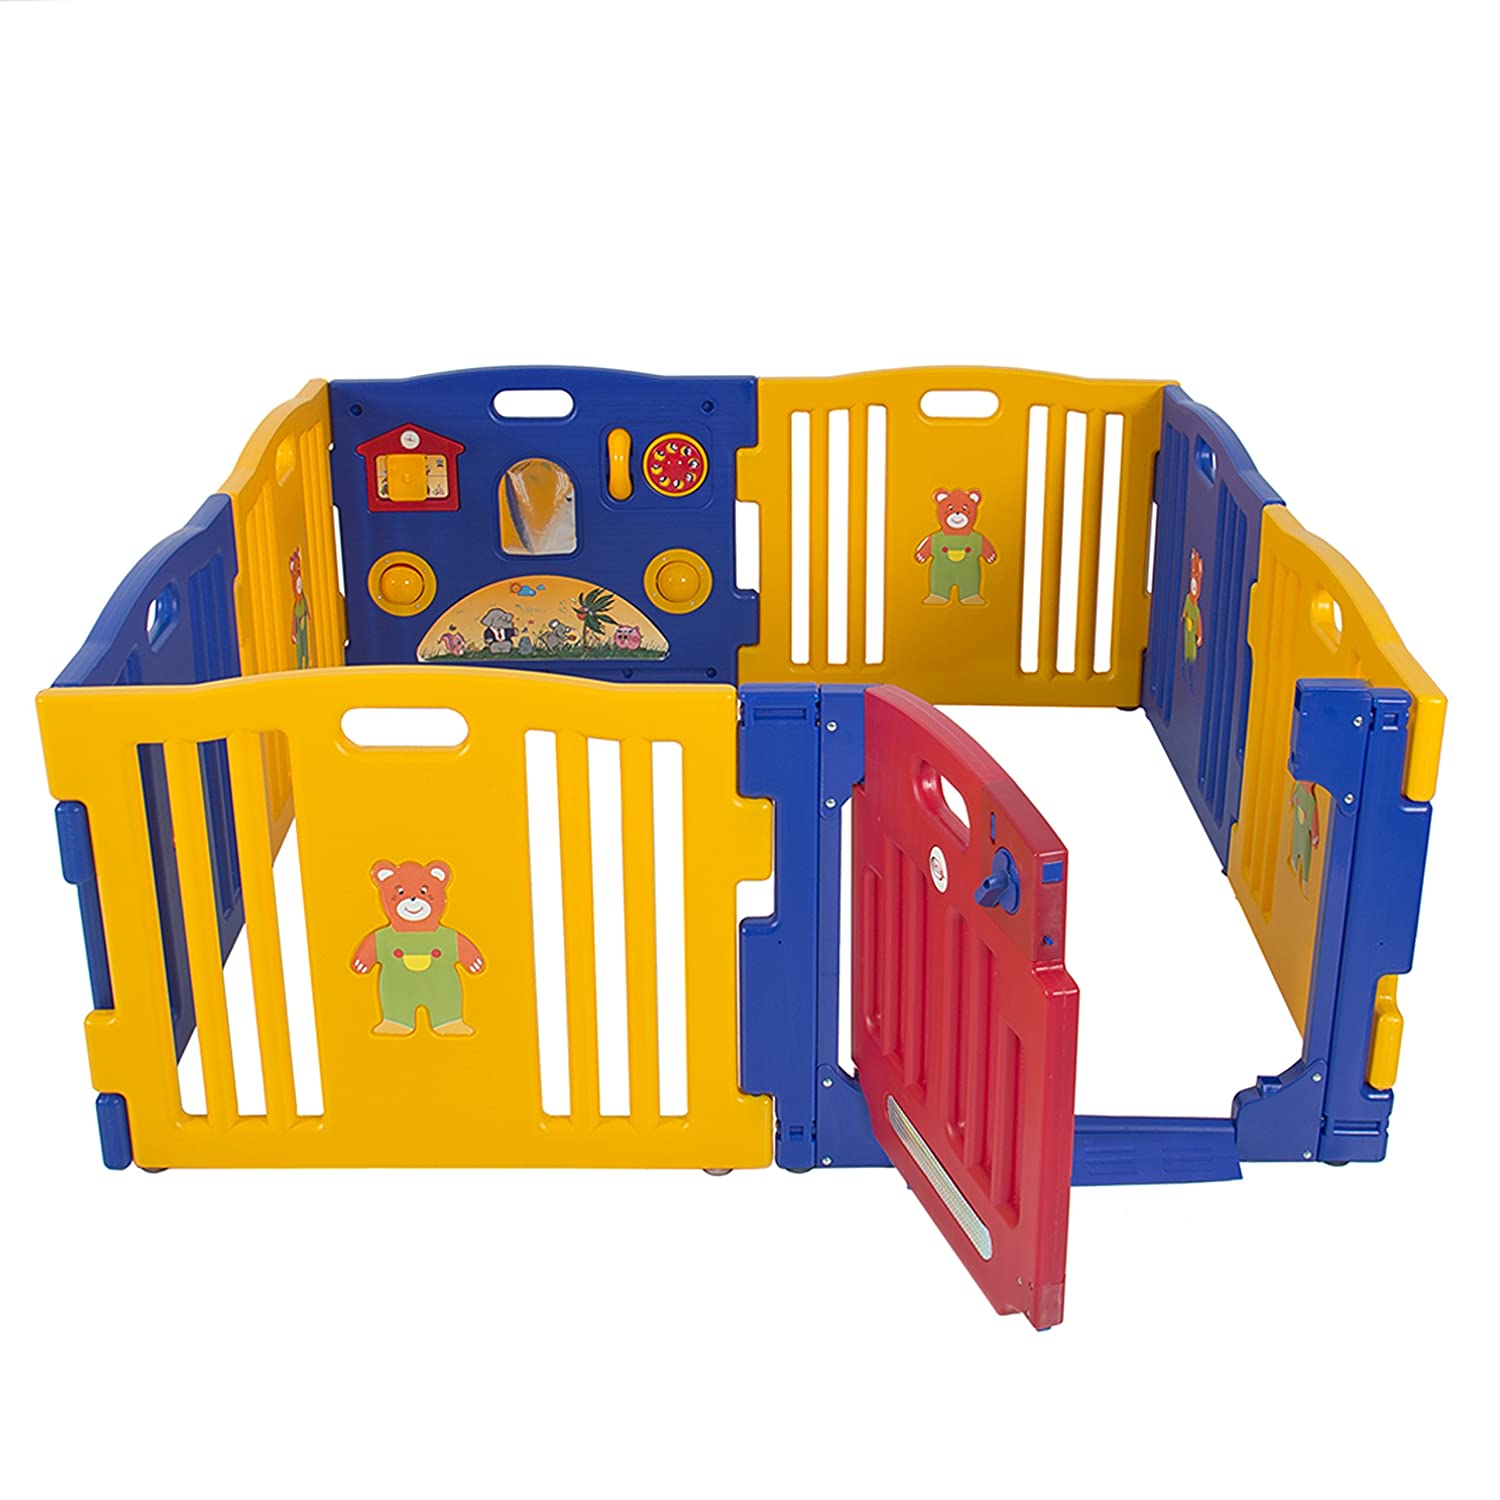 Amazon.com : Best Choice Products Baby Playpen Kids 8 Panel Safety ...